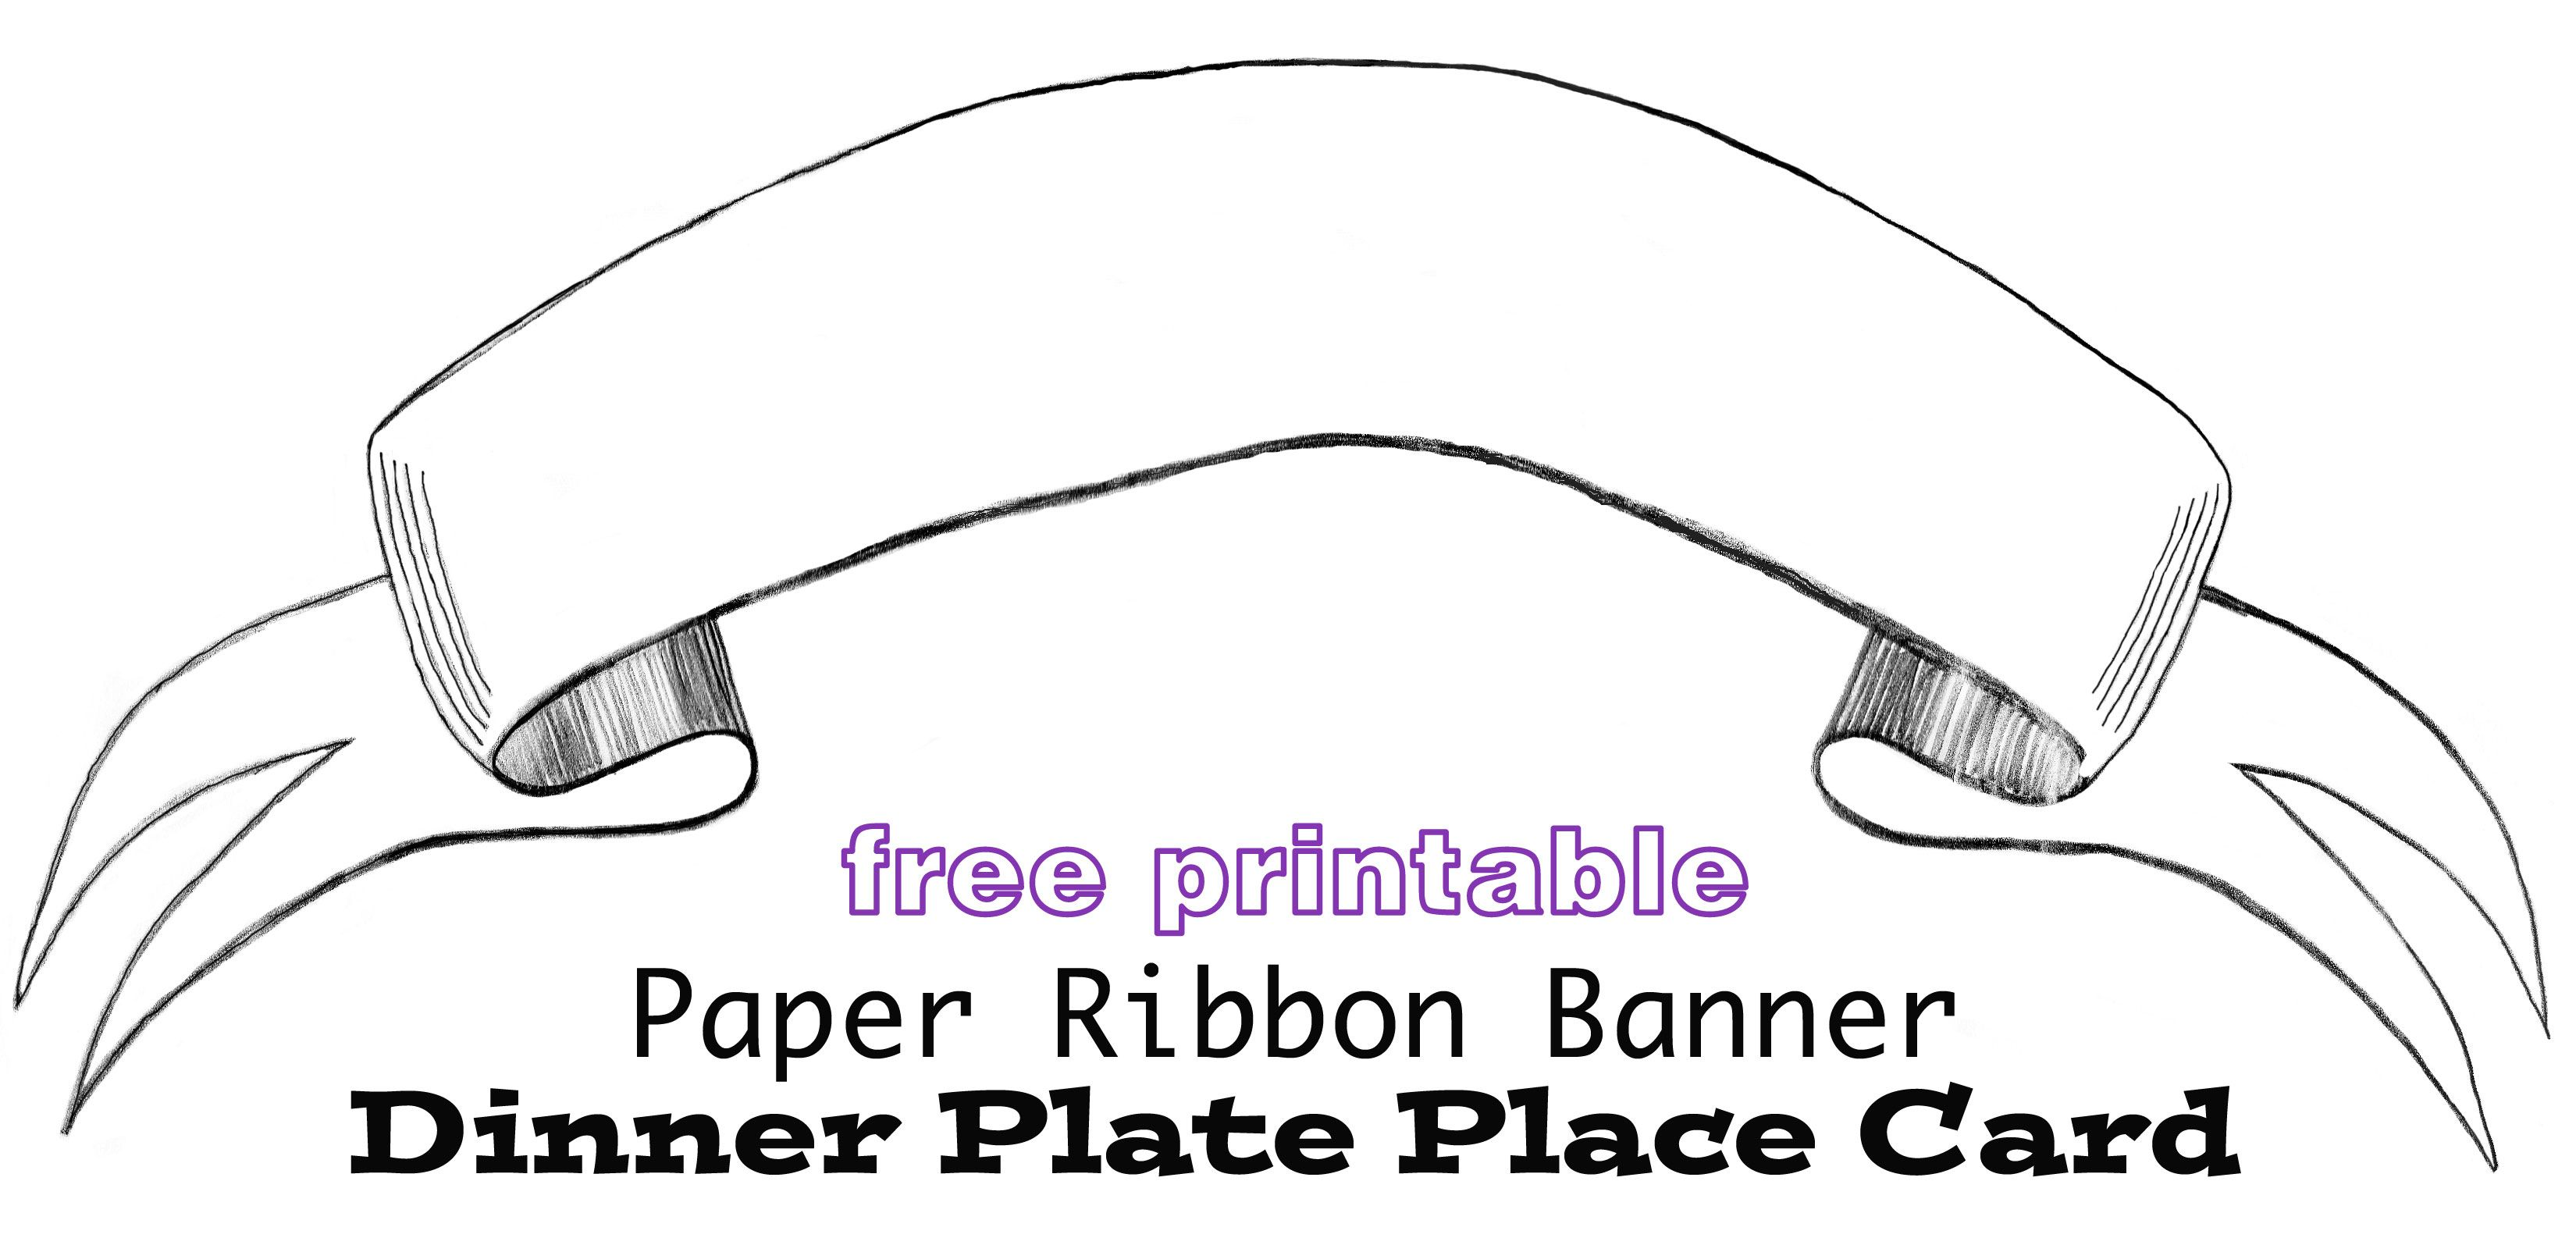 Printable Paper Banner Dinner Plate Place Card Printable Banner Template Free Printable Banner Printable Banner